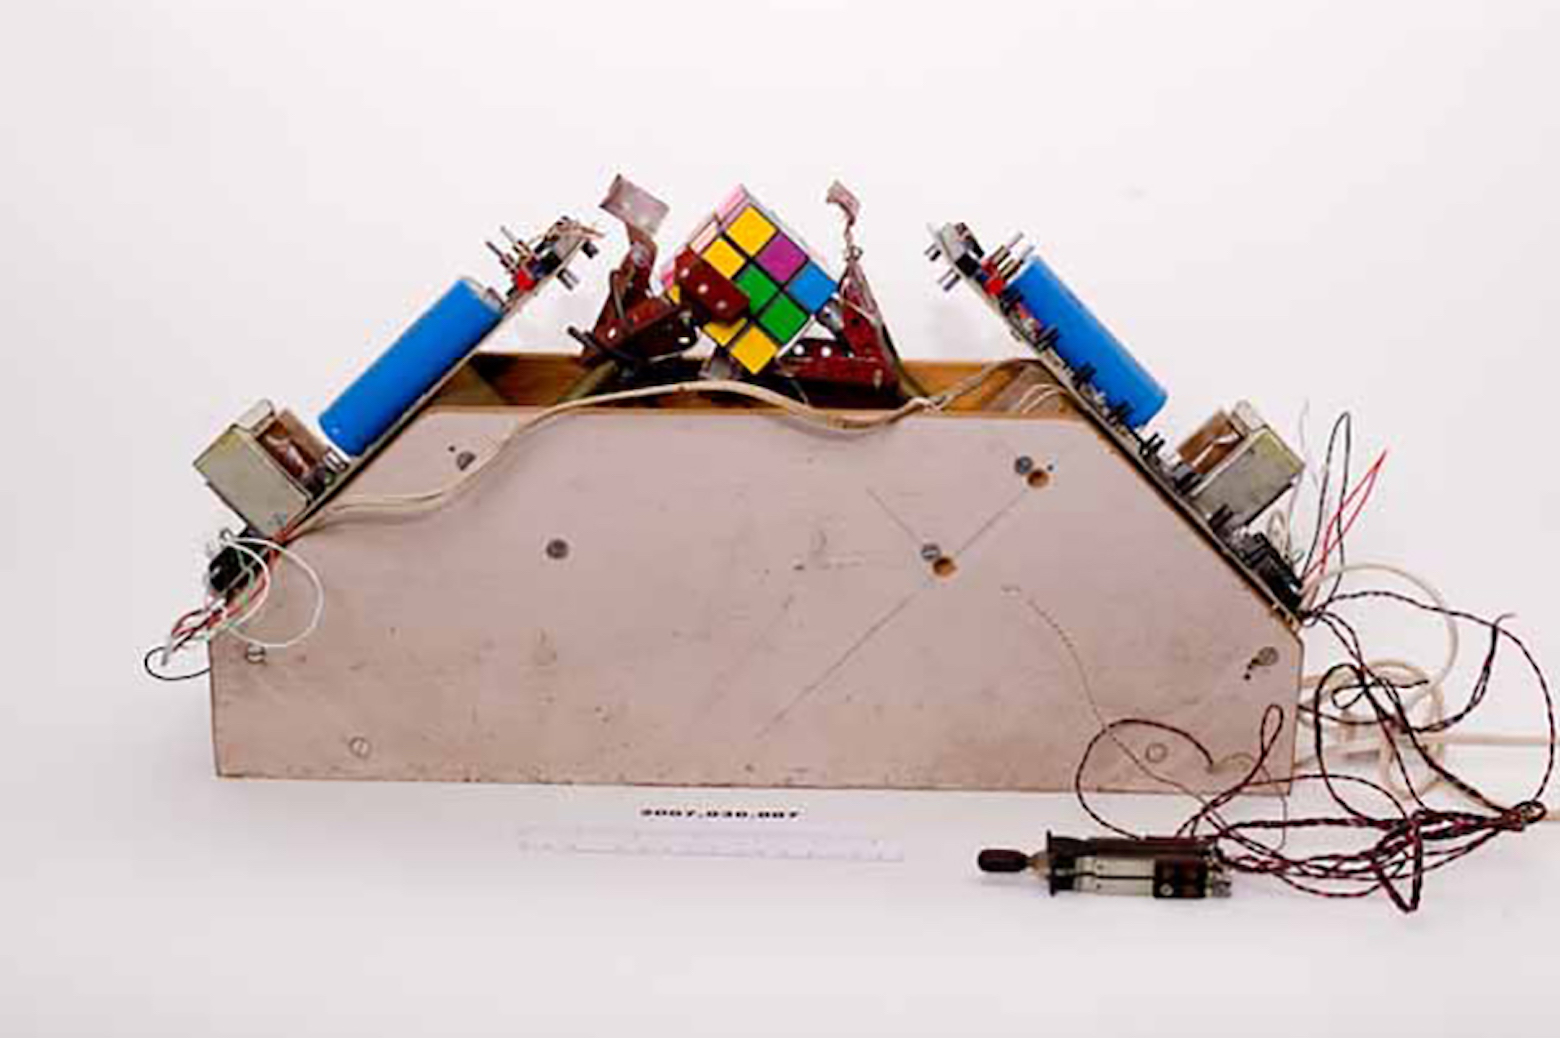 A device that mechanically solves rubiks cubes